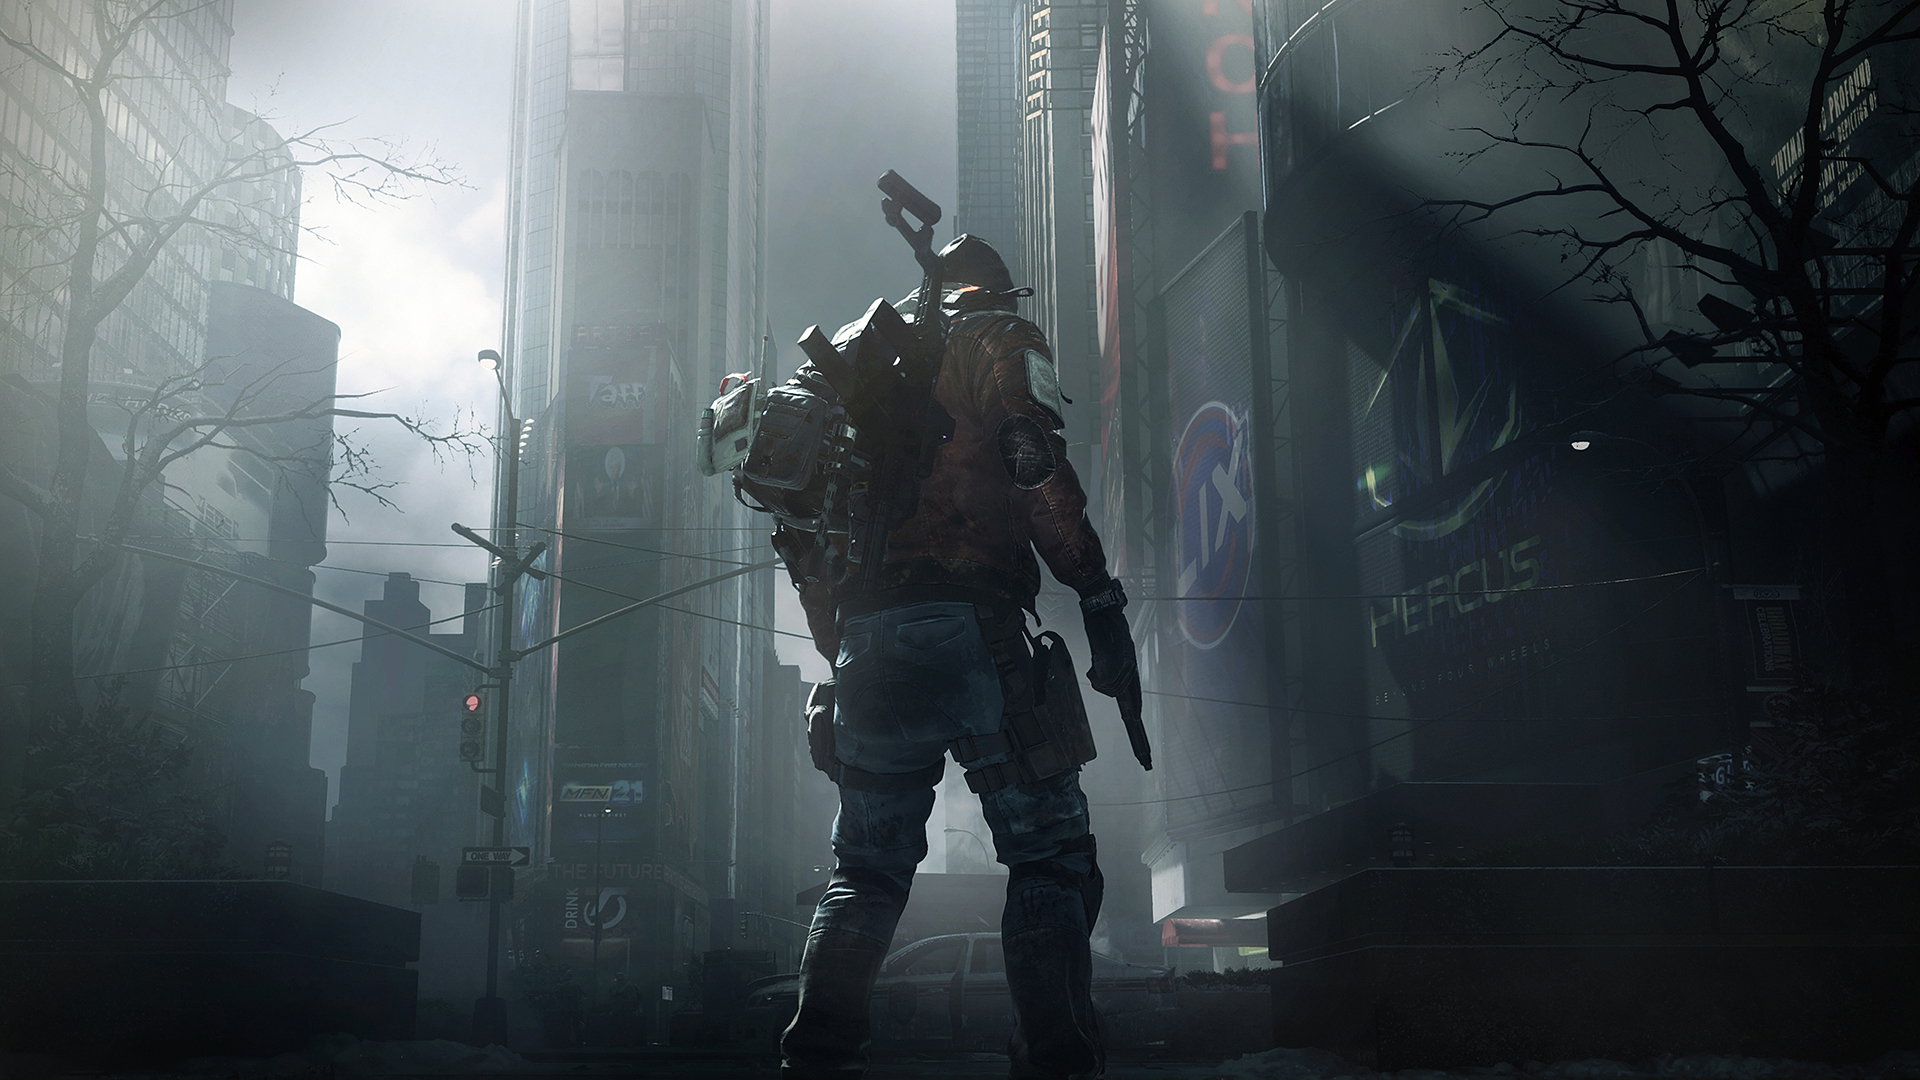 The Division's Falcon Lost is now less easy to exploit | PC Gamer